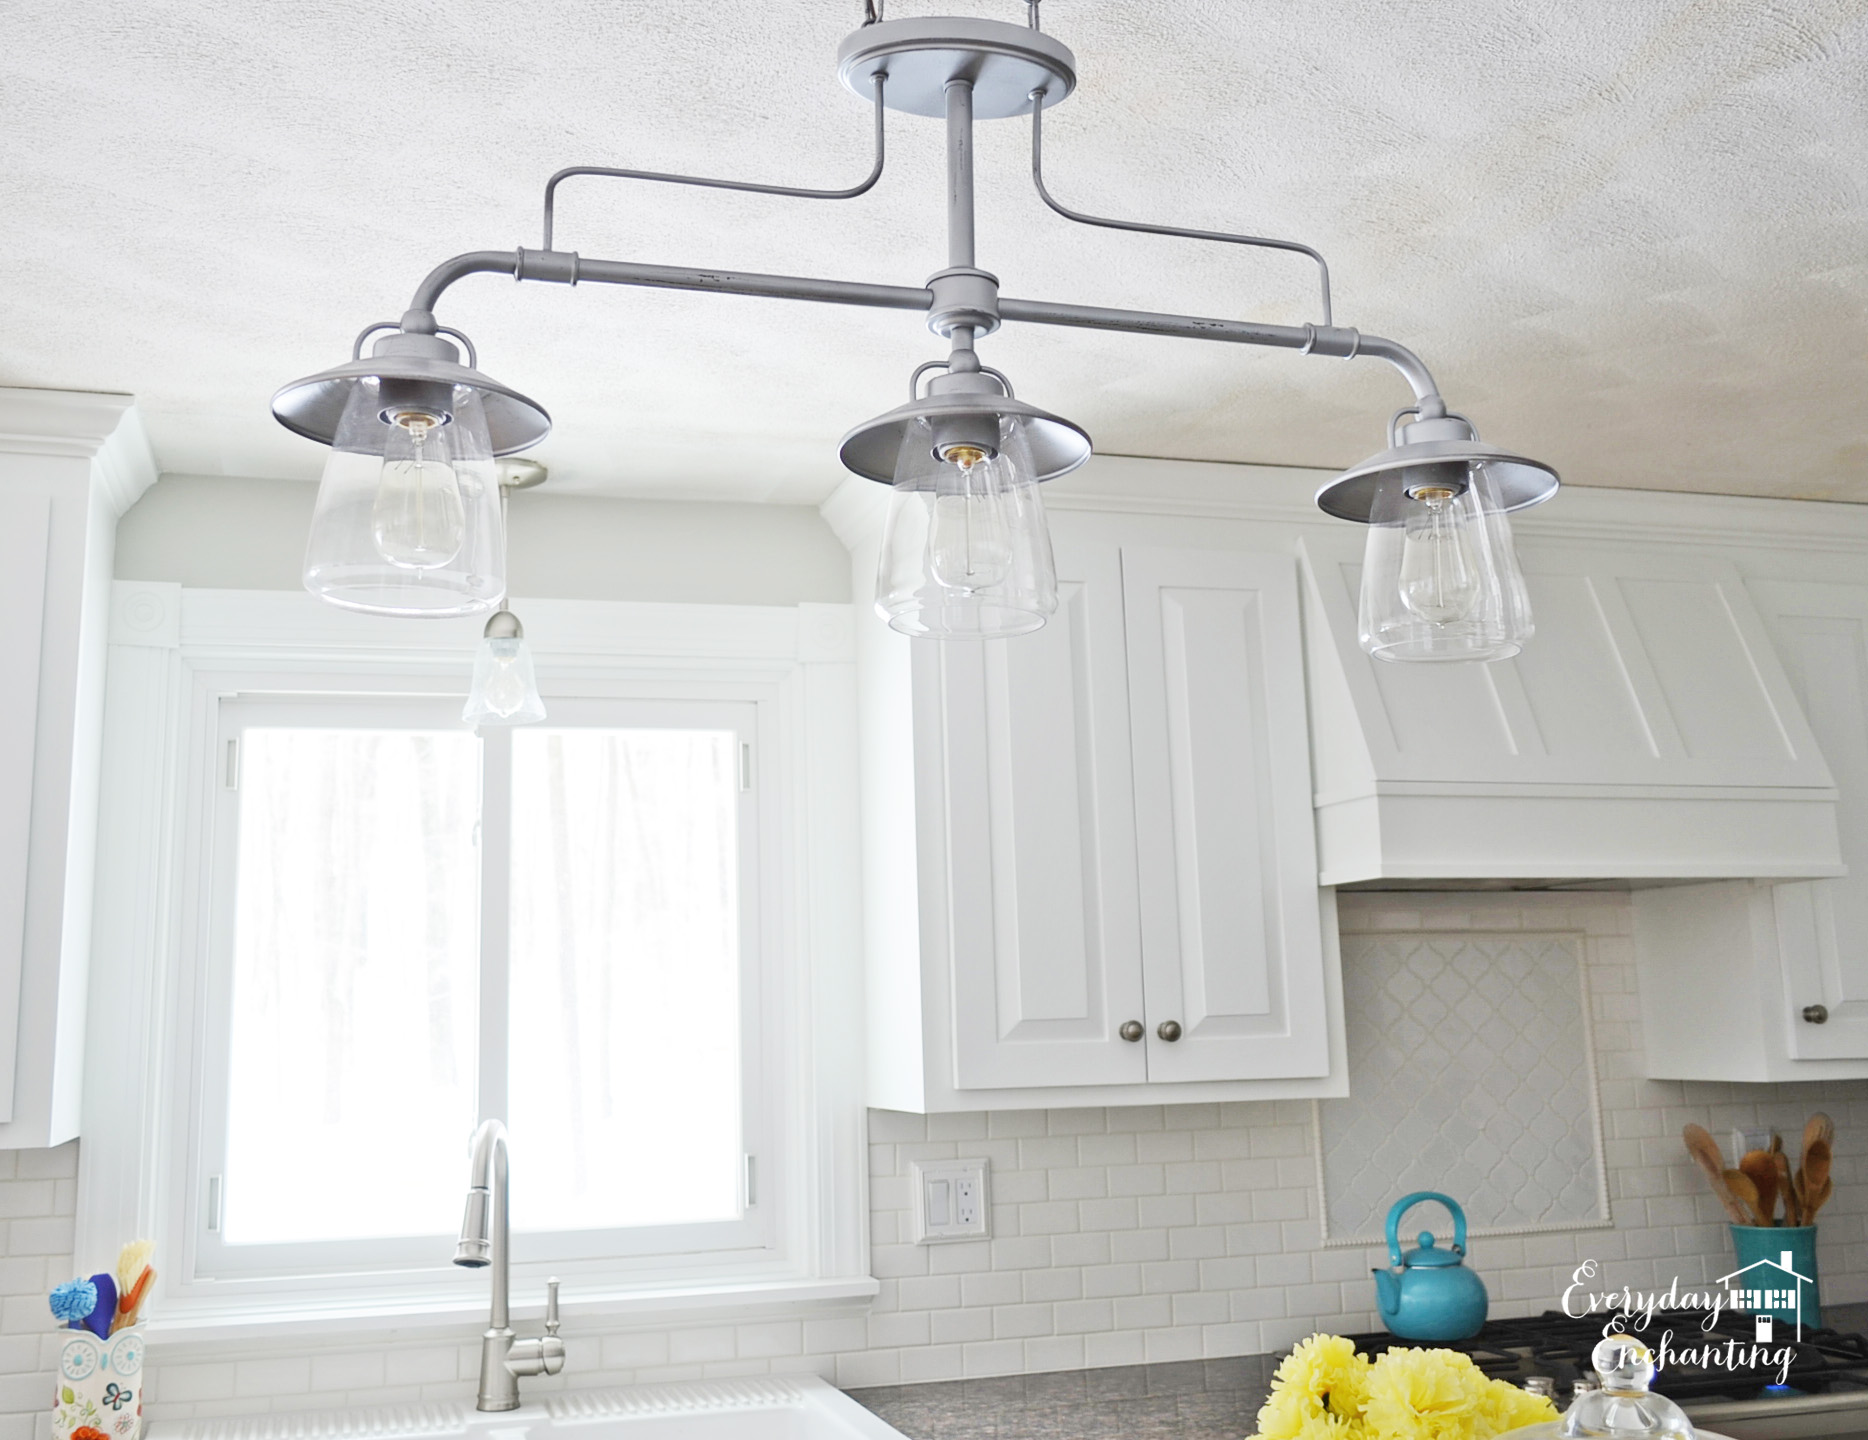 Kitchen Light Fixtures 1868 x 1440